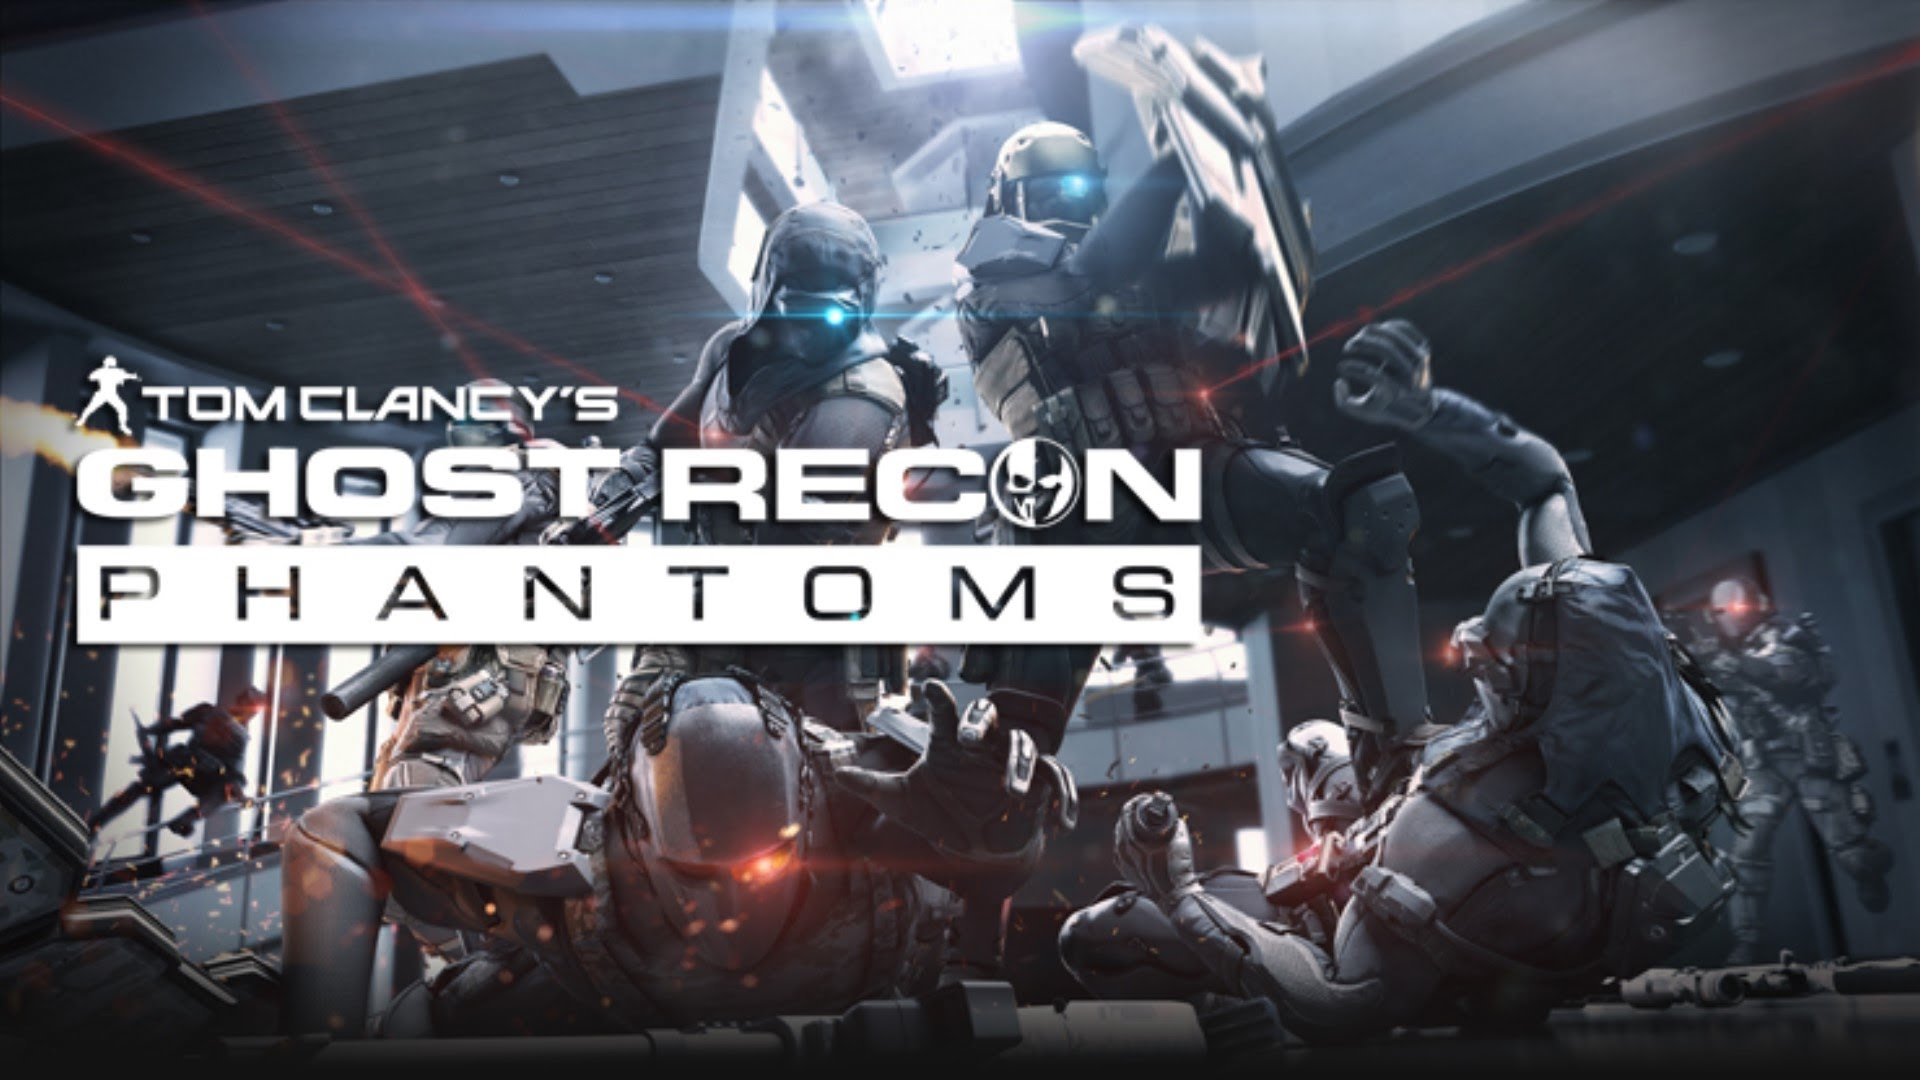 Tom clancy s ghost recon phantoms ecco la versione di prova